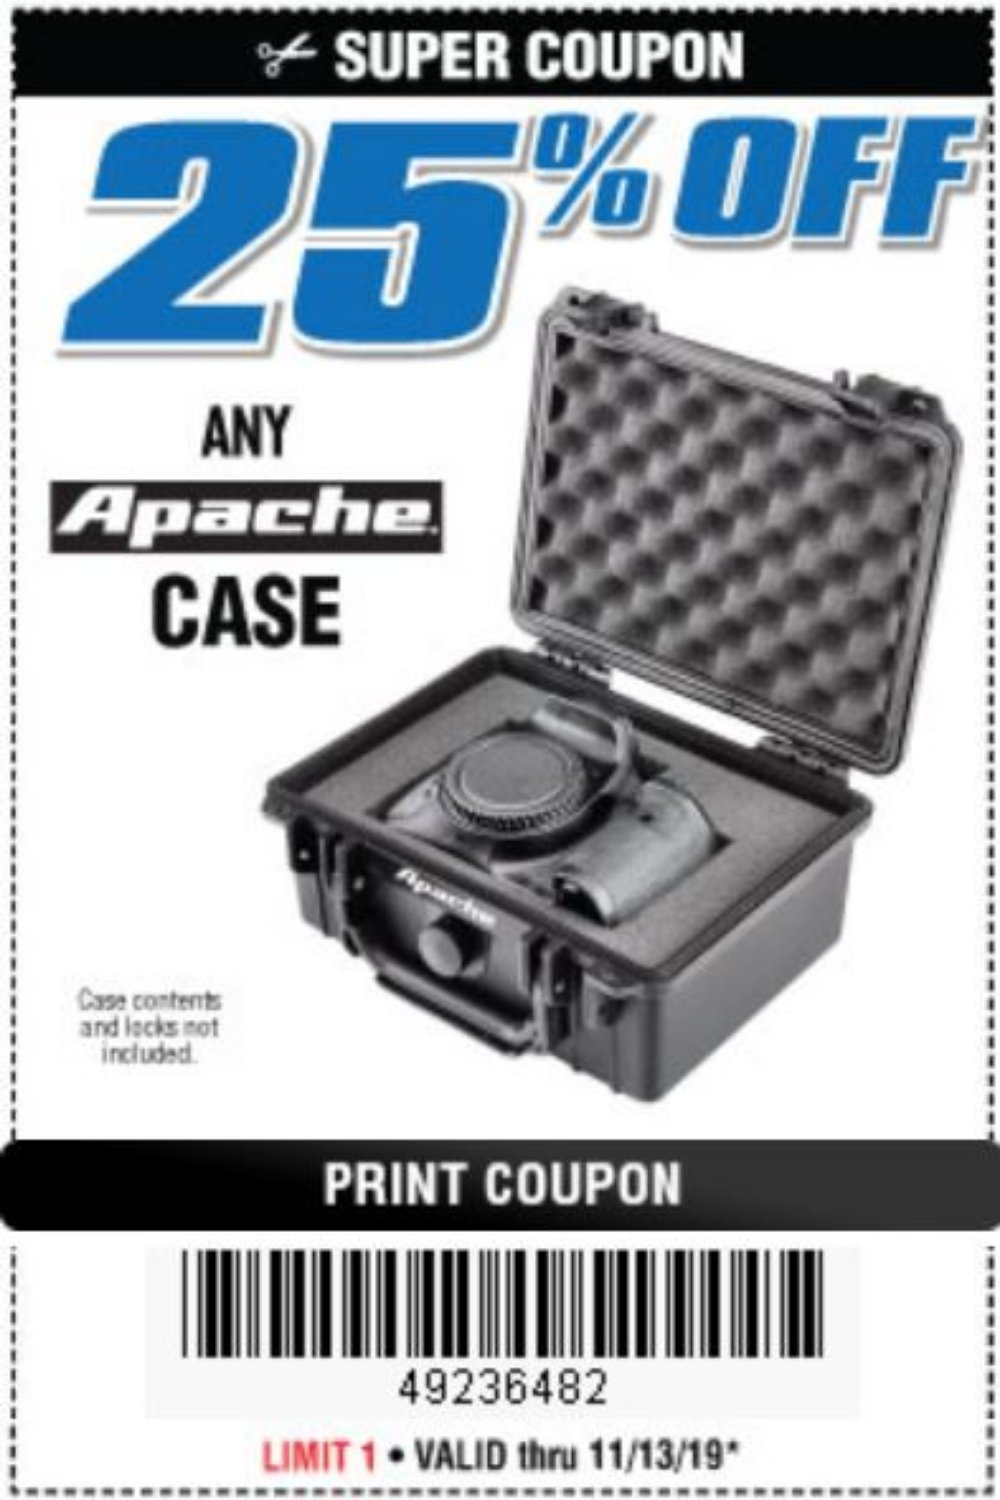 Harbor Freight Coupon, HF Coupons - any Apache case